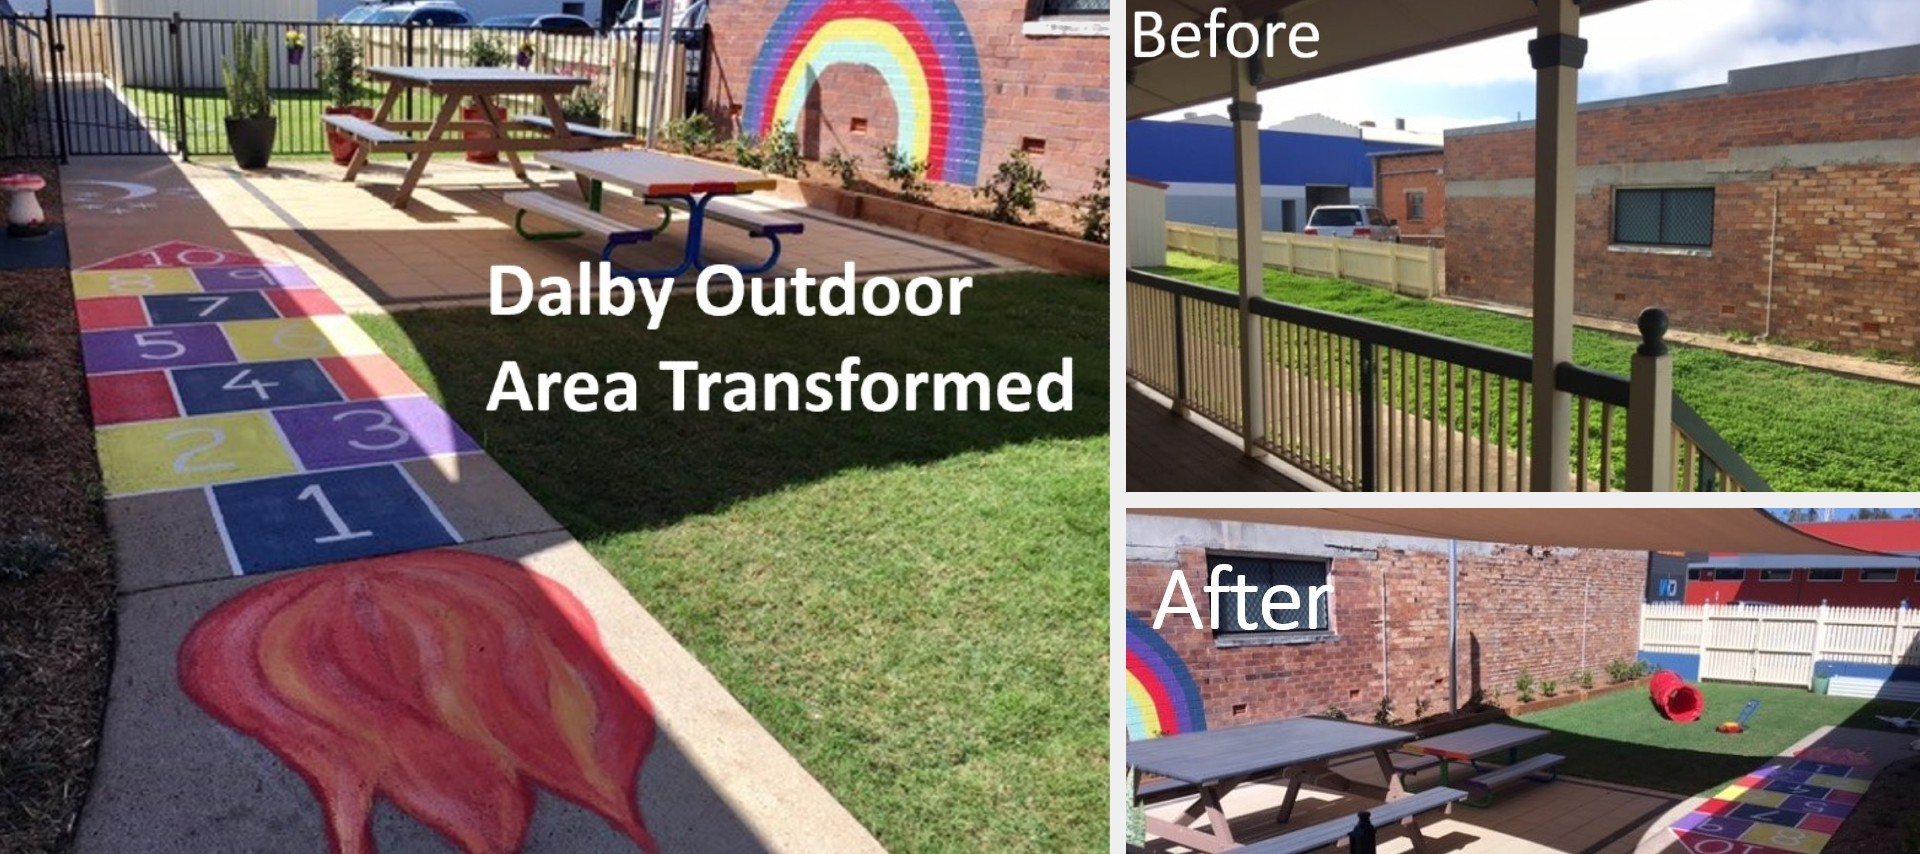 New Outdoor Area in Dalby